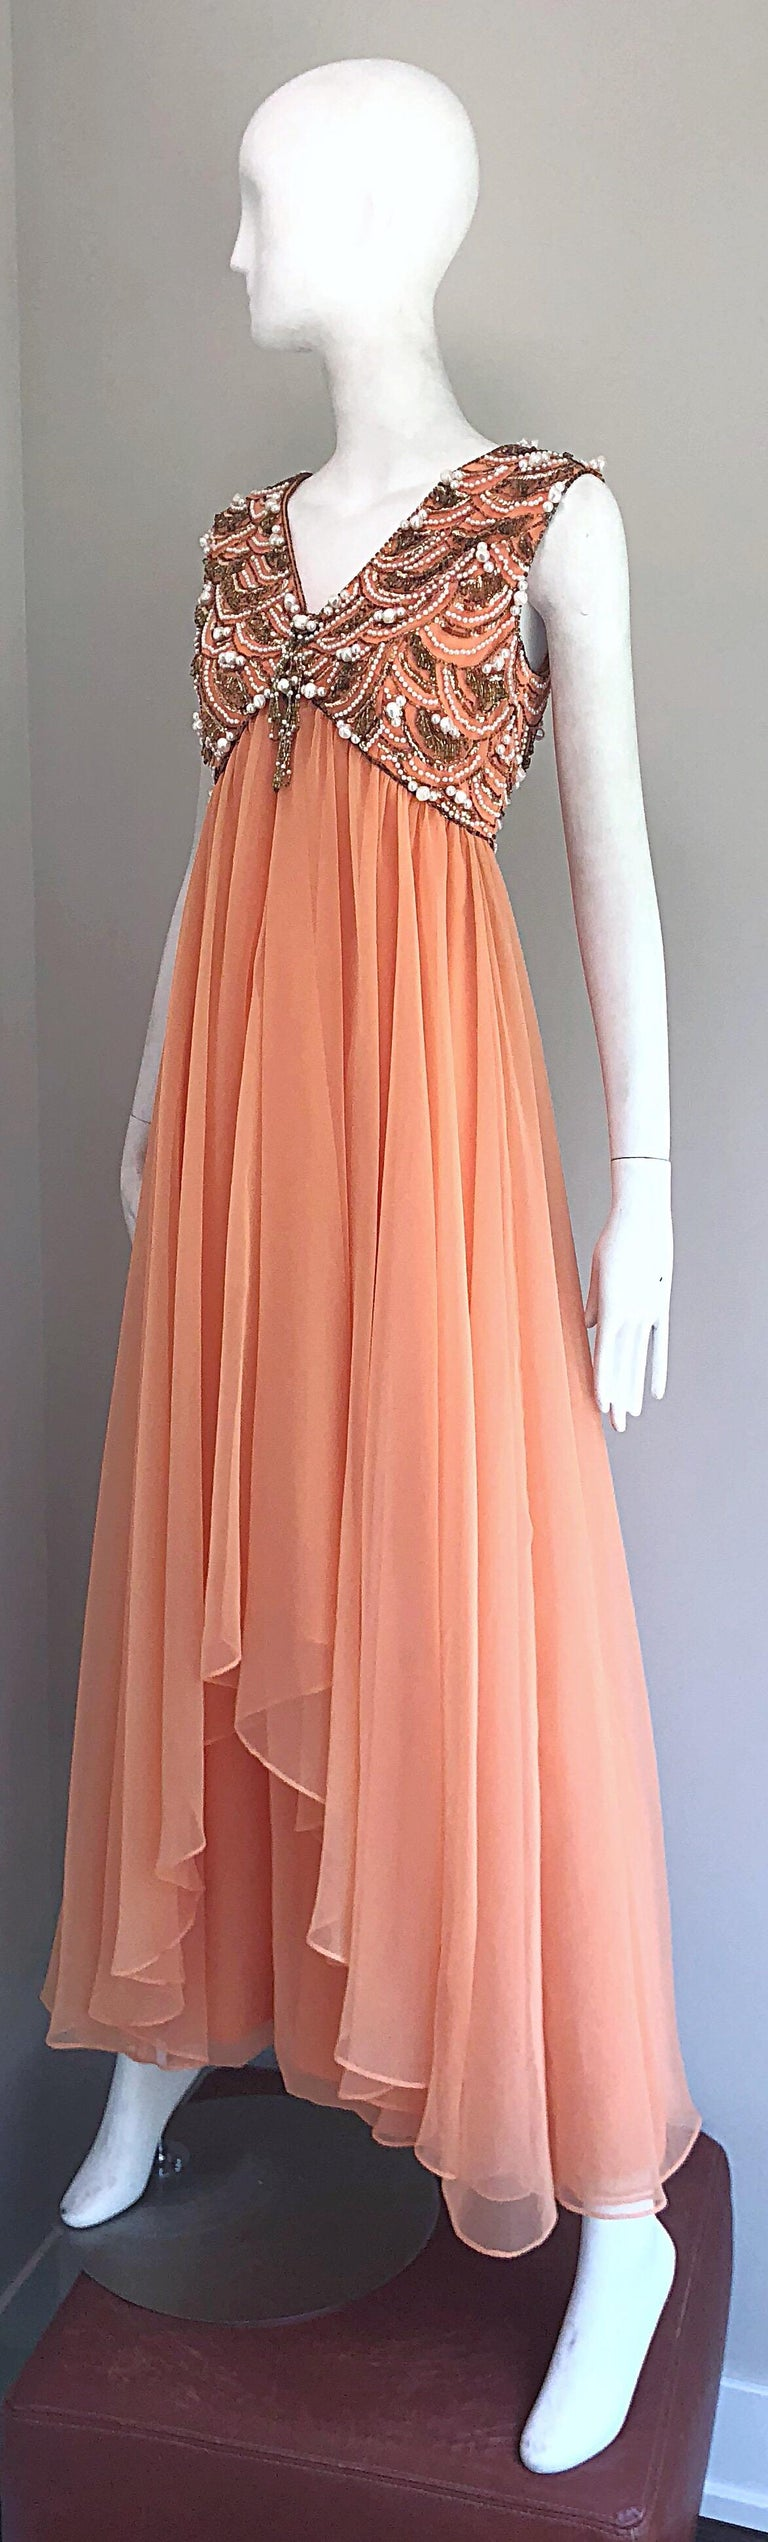 Women's 1960s Isabell Gerhart Sherbet Coral Demi Couture Beaded Chiffon 60s Gown Dress For Sale